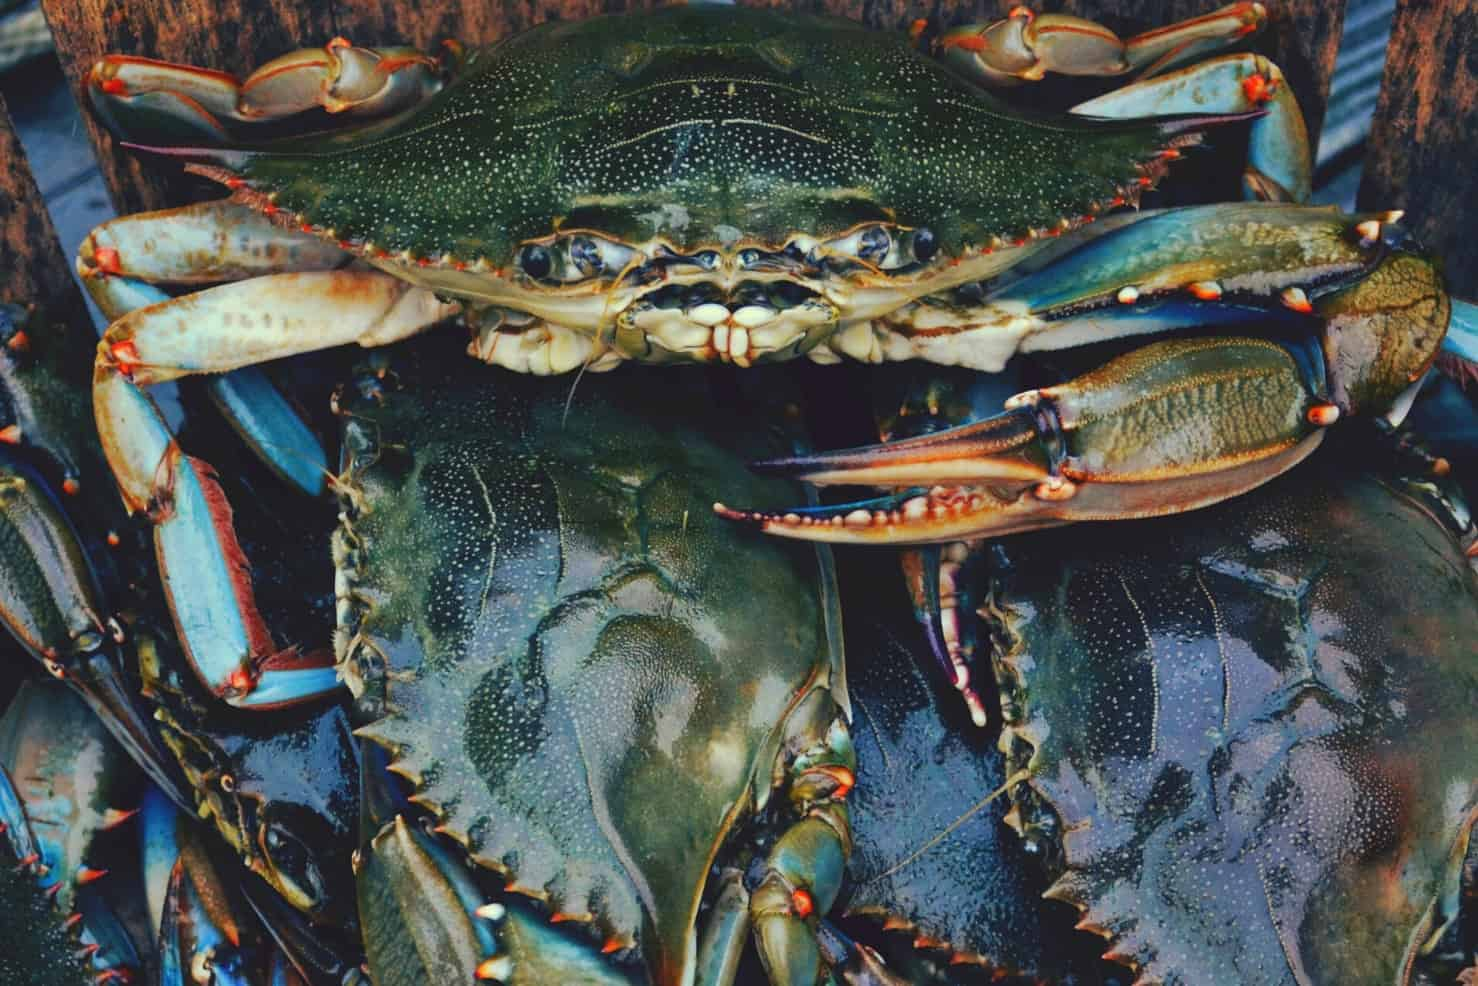 A stack of shiny blue crabs